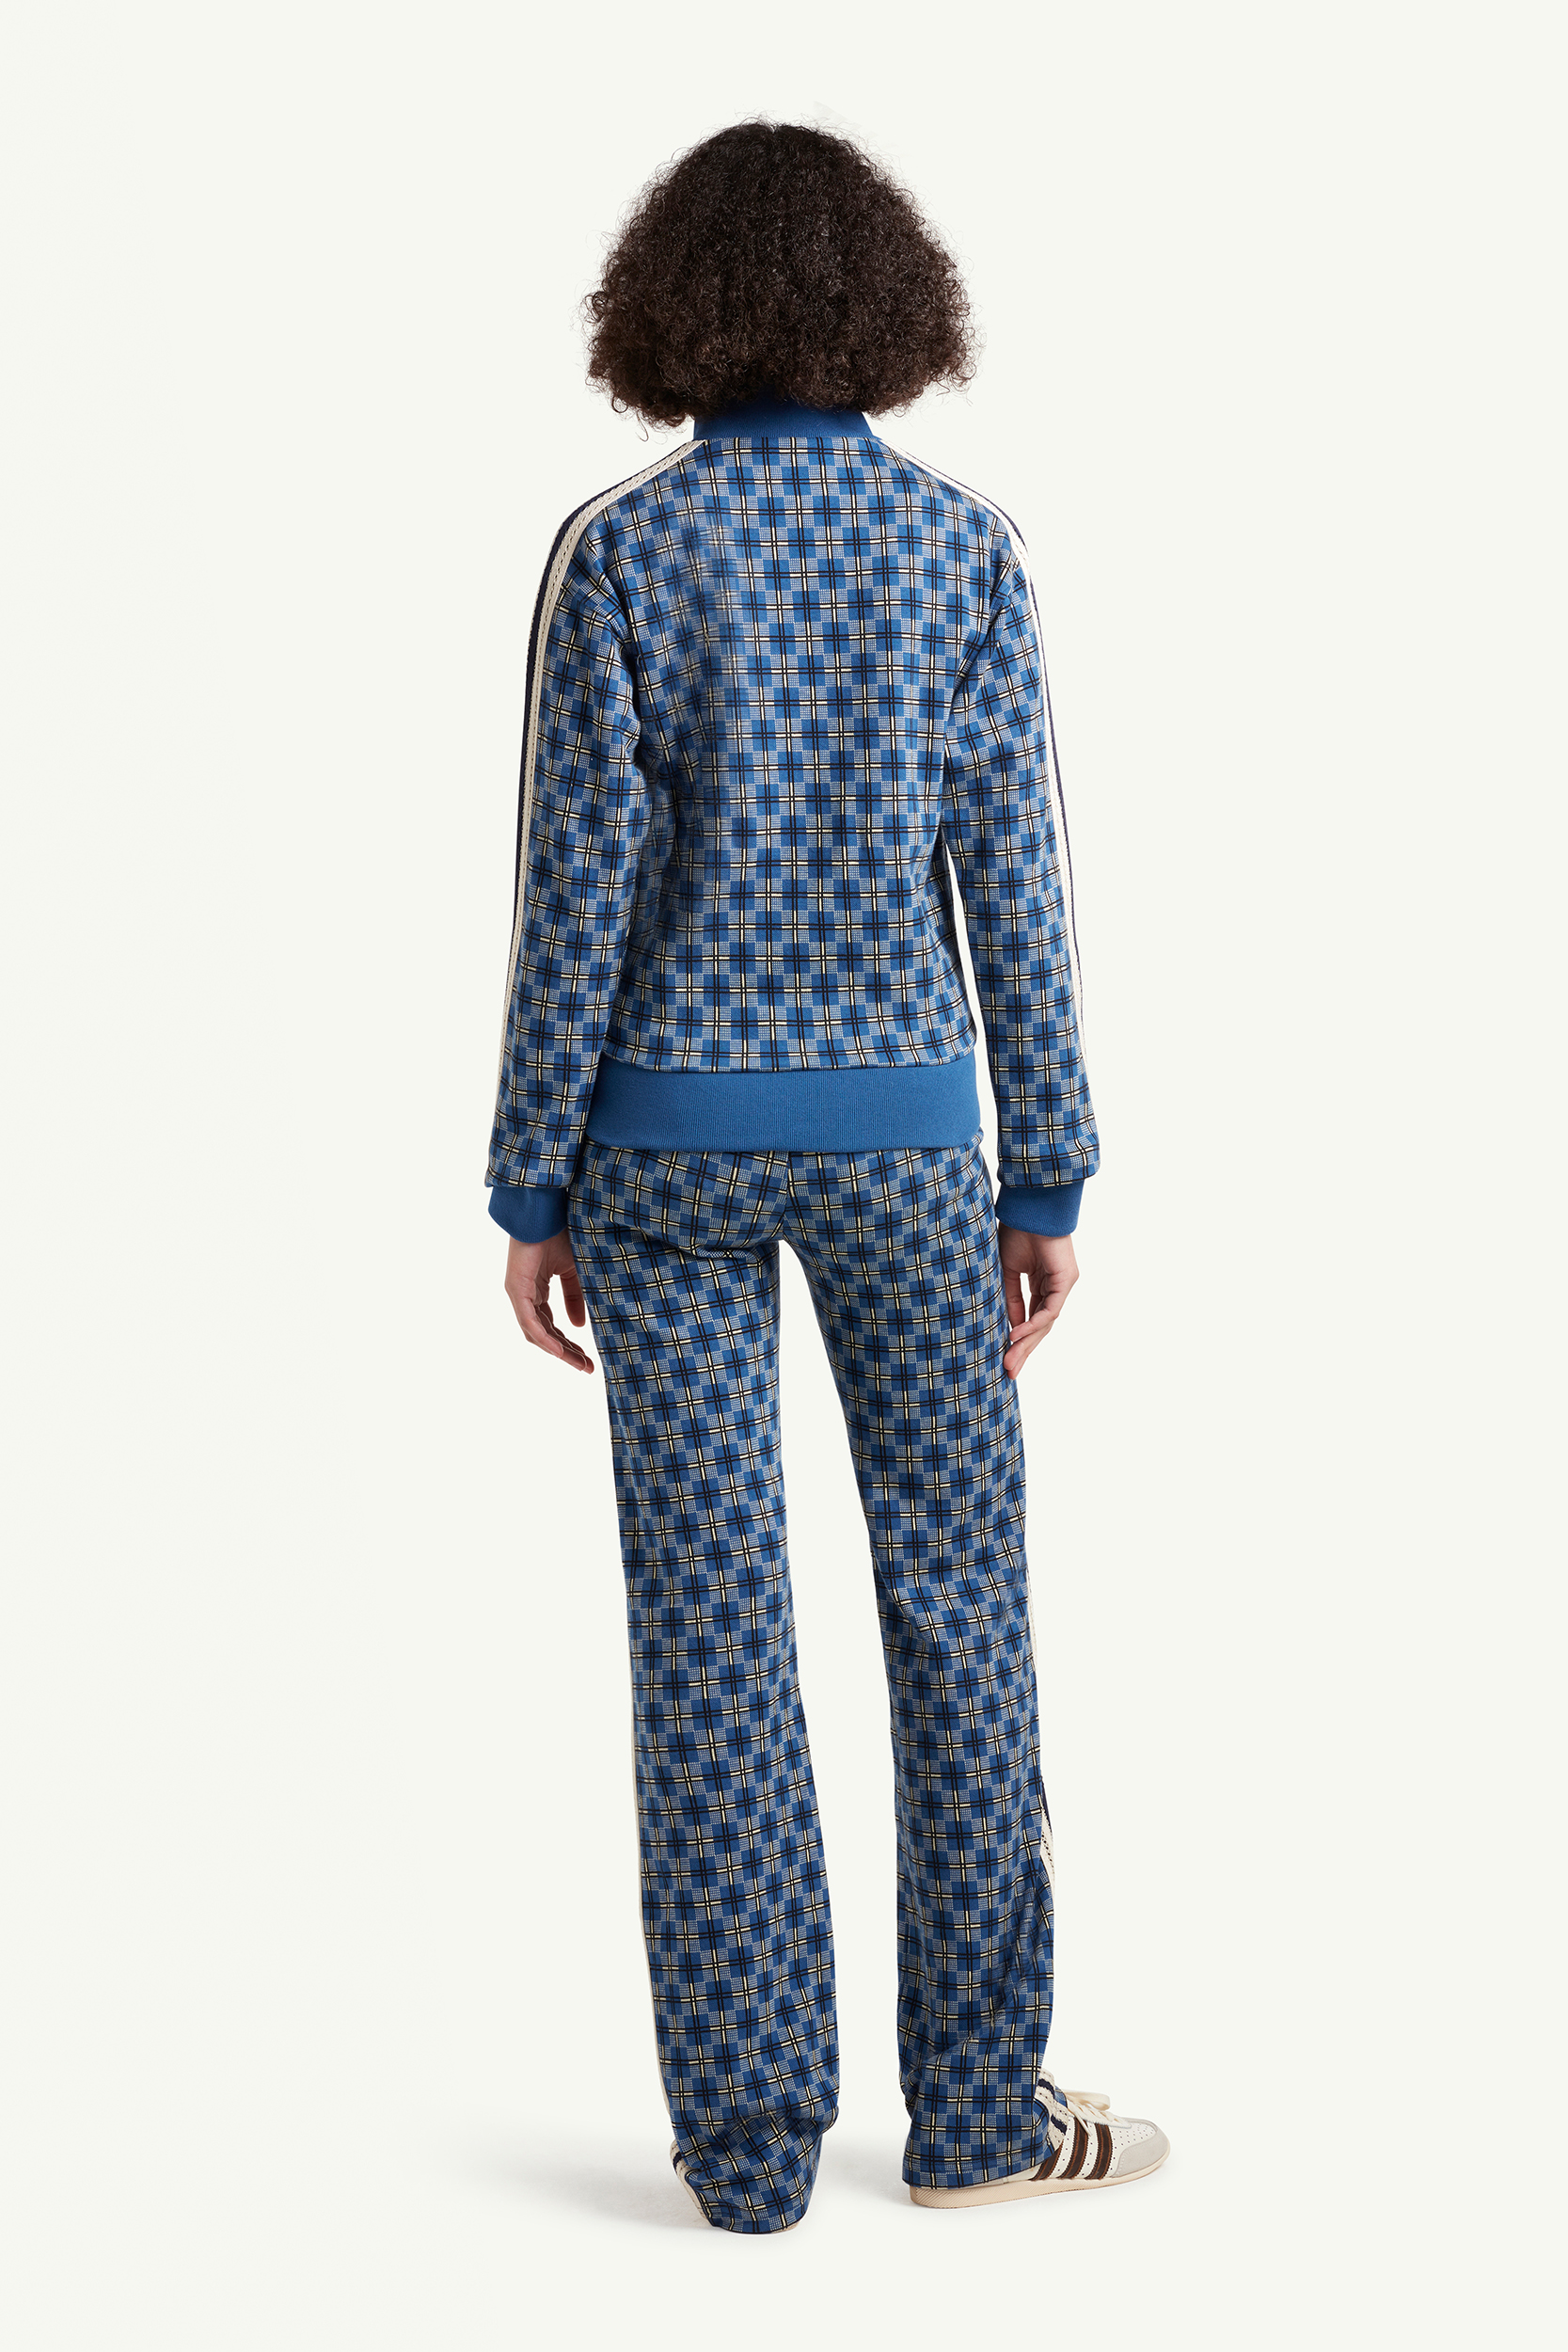 Backside shot of Womenswear model wearing Detail shot of Wales Bonner blue pattern trousers with white stripes on same pattern track top